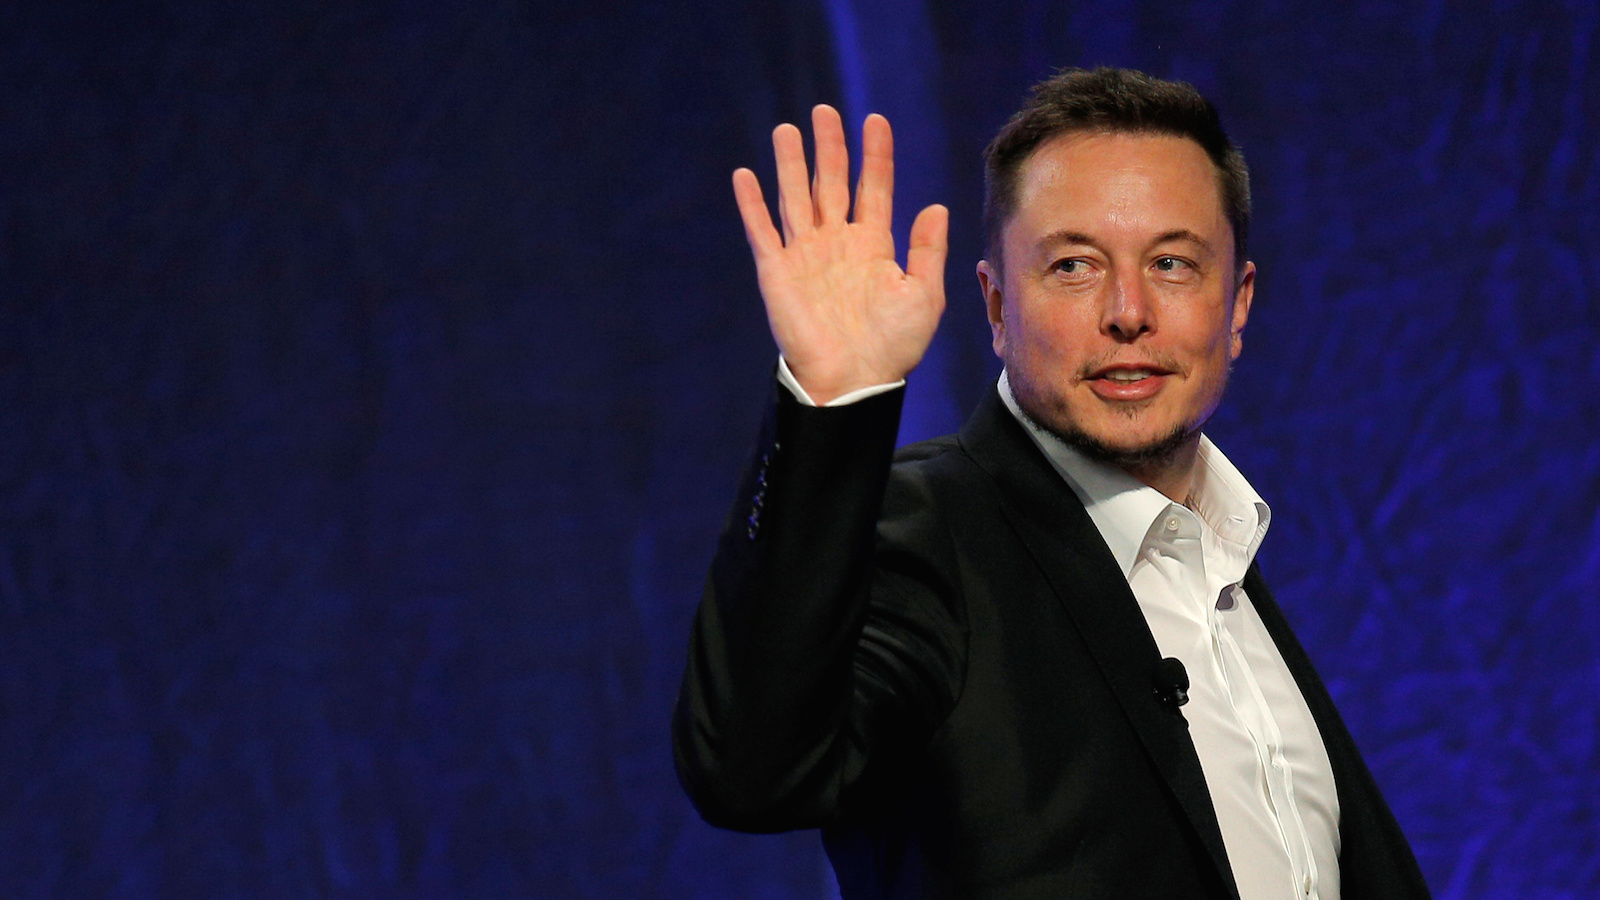 Tesla Motors CEO Elon Musk waves as he leaves the stage after speaking at the National Governors Association Summer Meeting in Providence, Rhode Island, U.S., July 15, 2017. REUTERS/Brian Snyder - RTX3BLQX